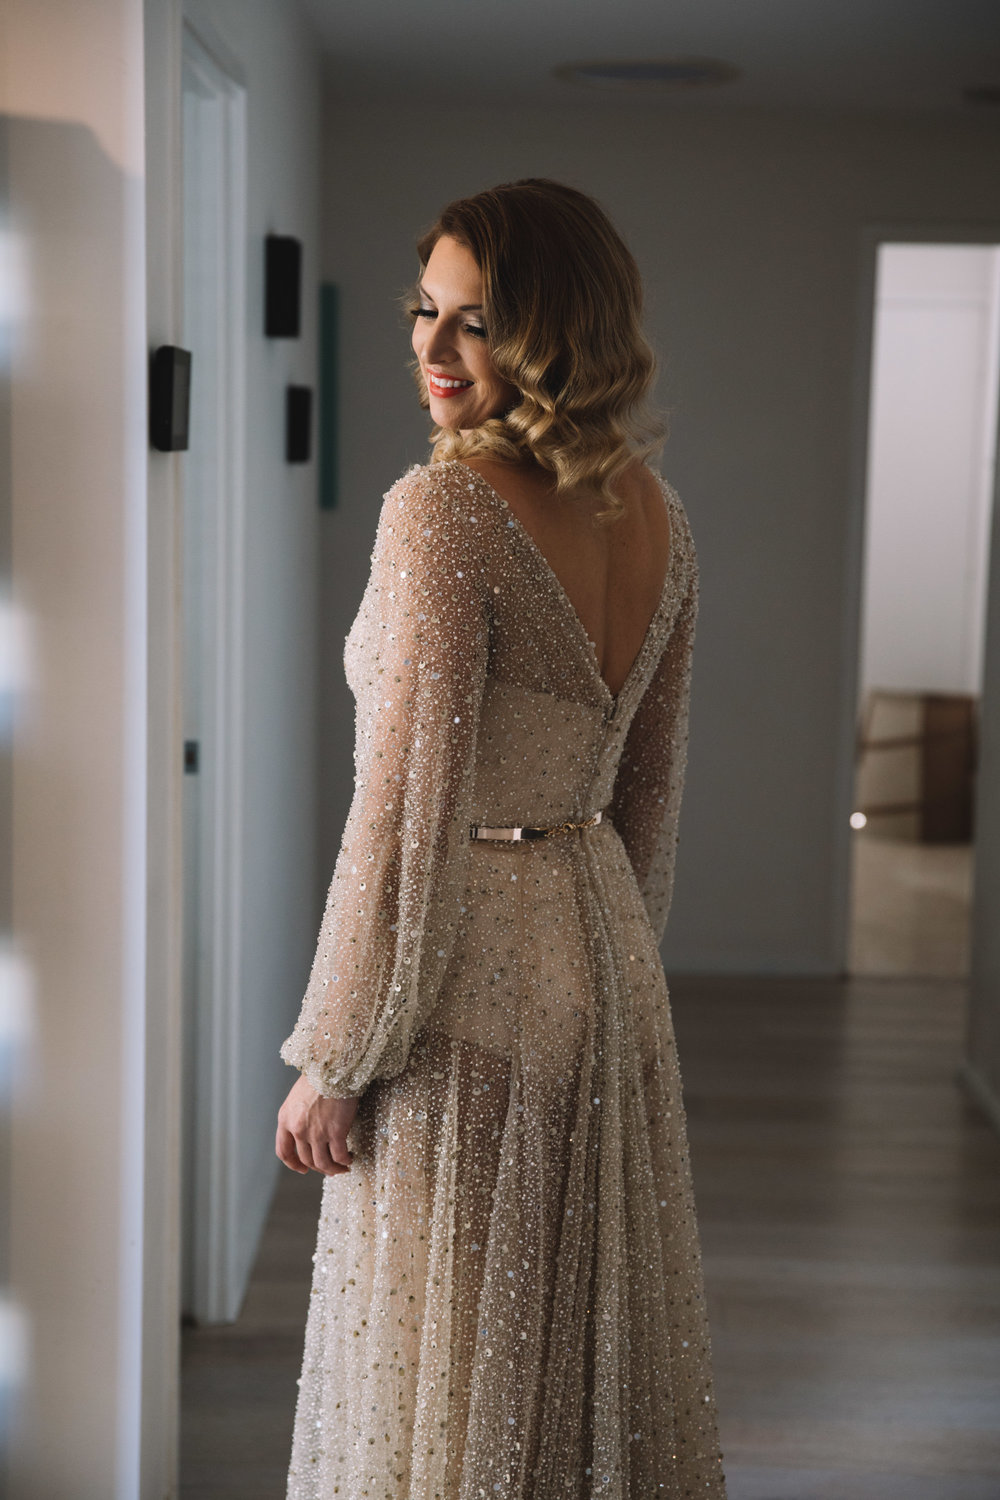 Evening Gowns Hire Gold Coast